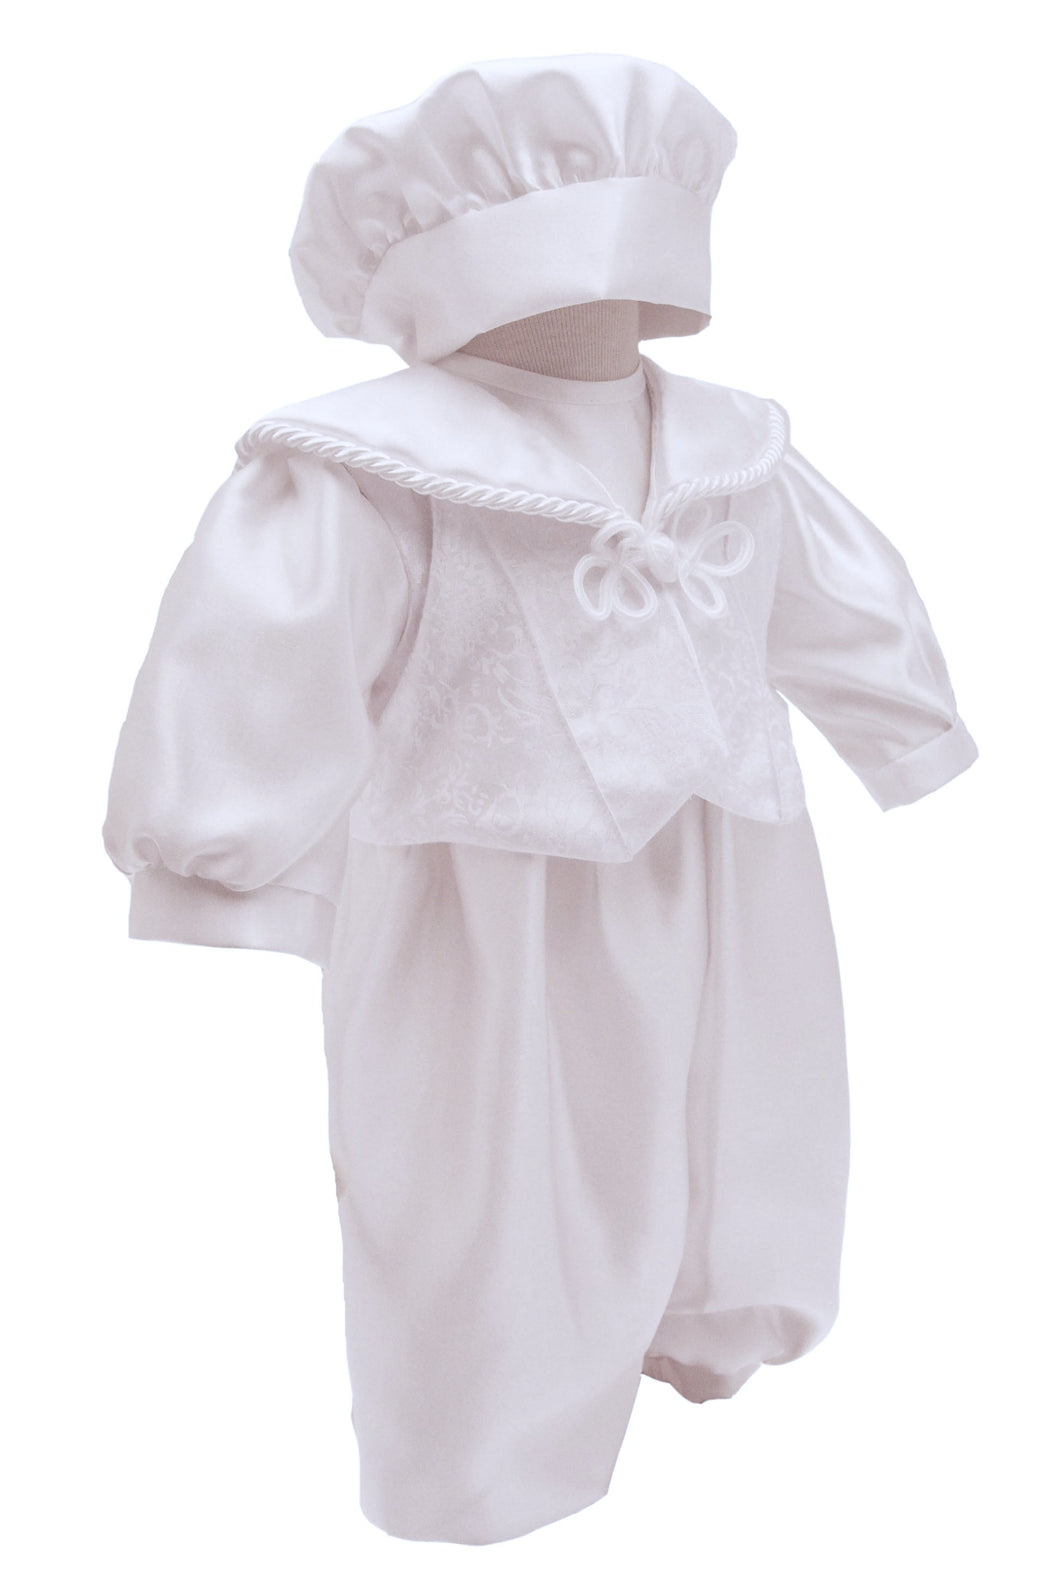 Baby boy Christening outfit. Baby boys Christening suit. Baby boy romper set for Baptism . Baby boy white suit.